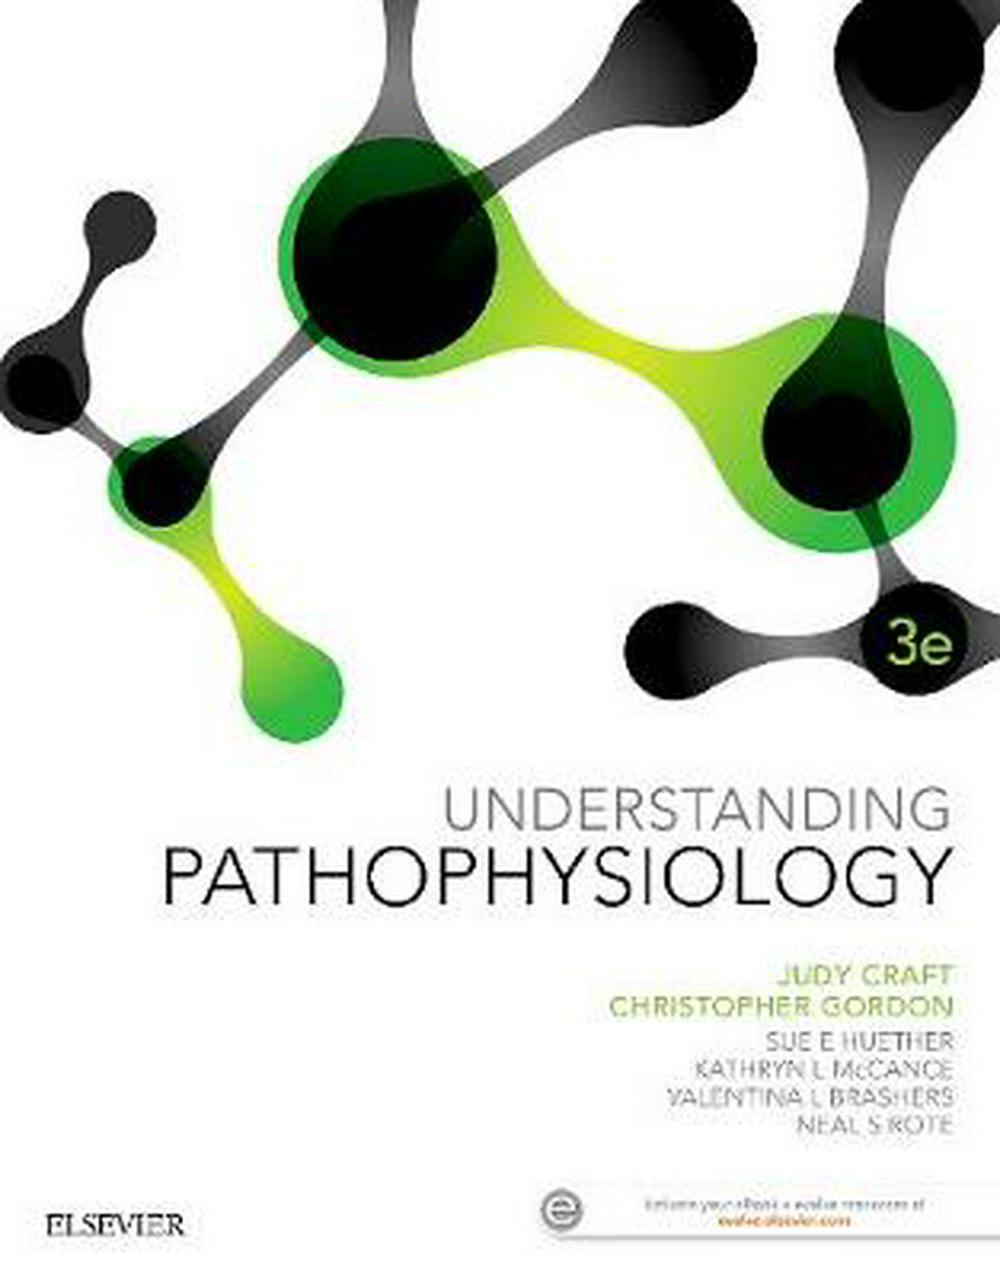 Understanding Pathophysiology ANZ (3rd Edition) by Judy Craft, Christopher Gordon, ISBN: 9780729542647